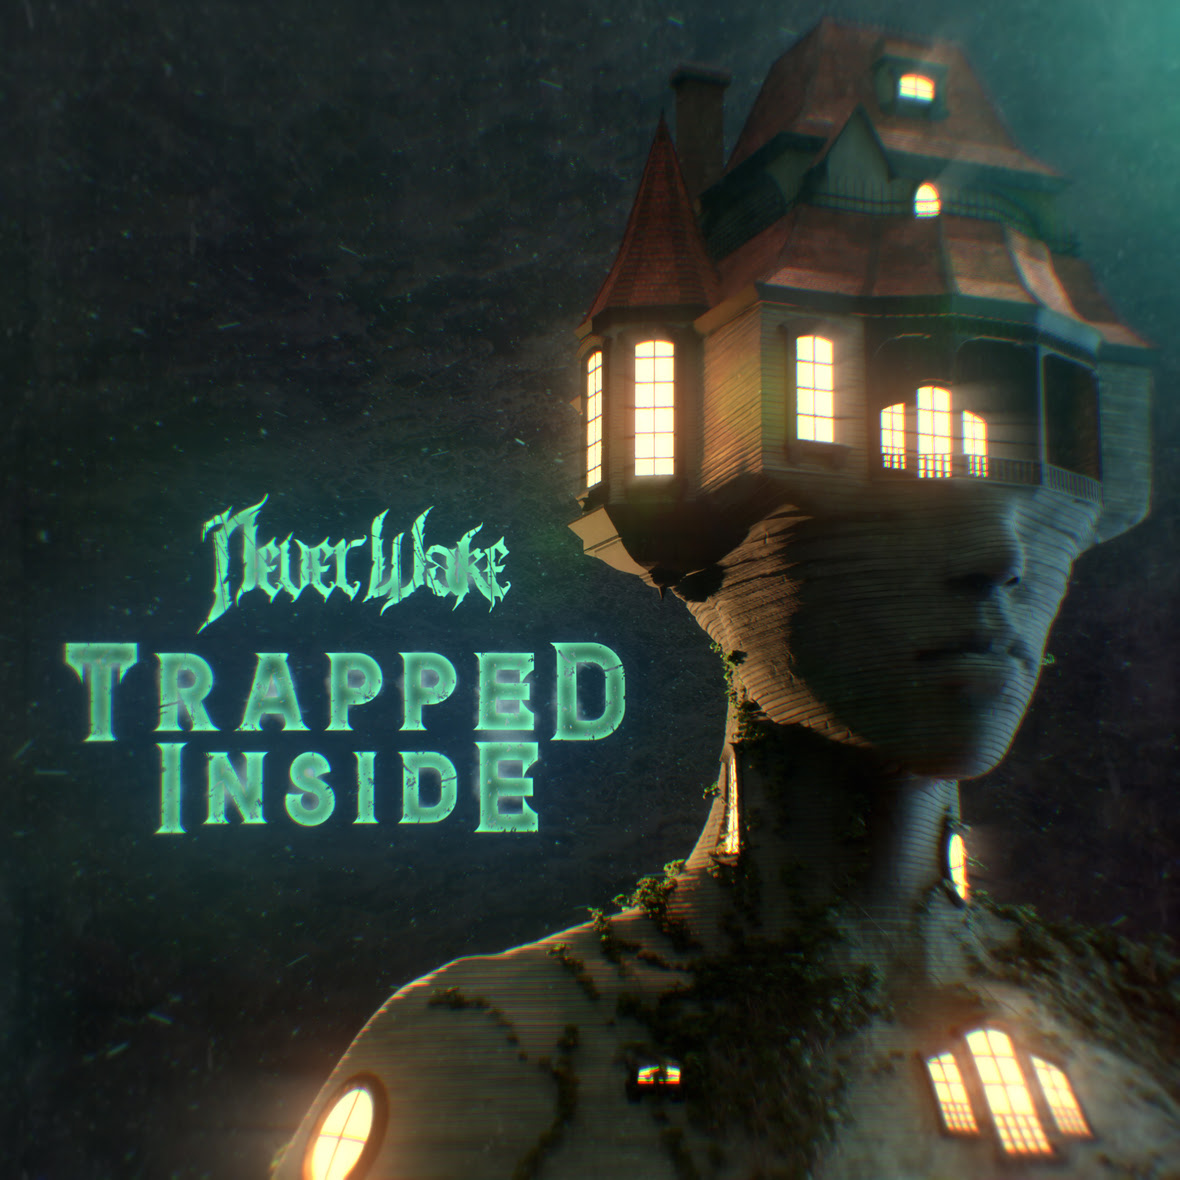 Trapped Inside - Single Art